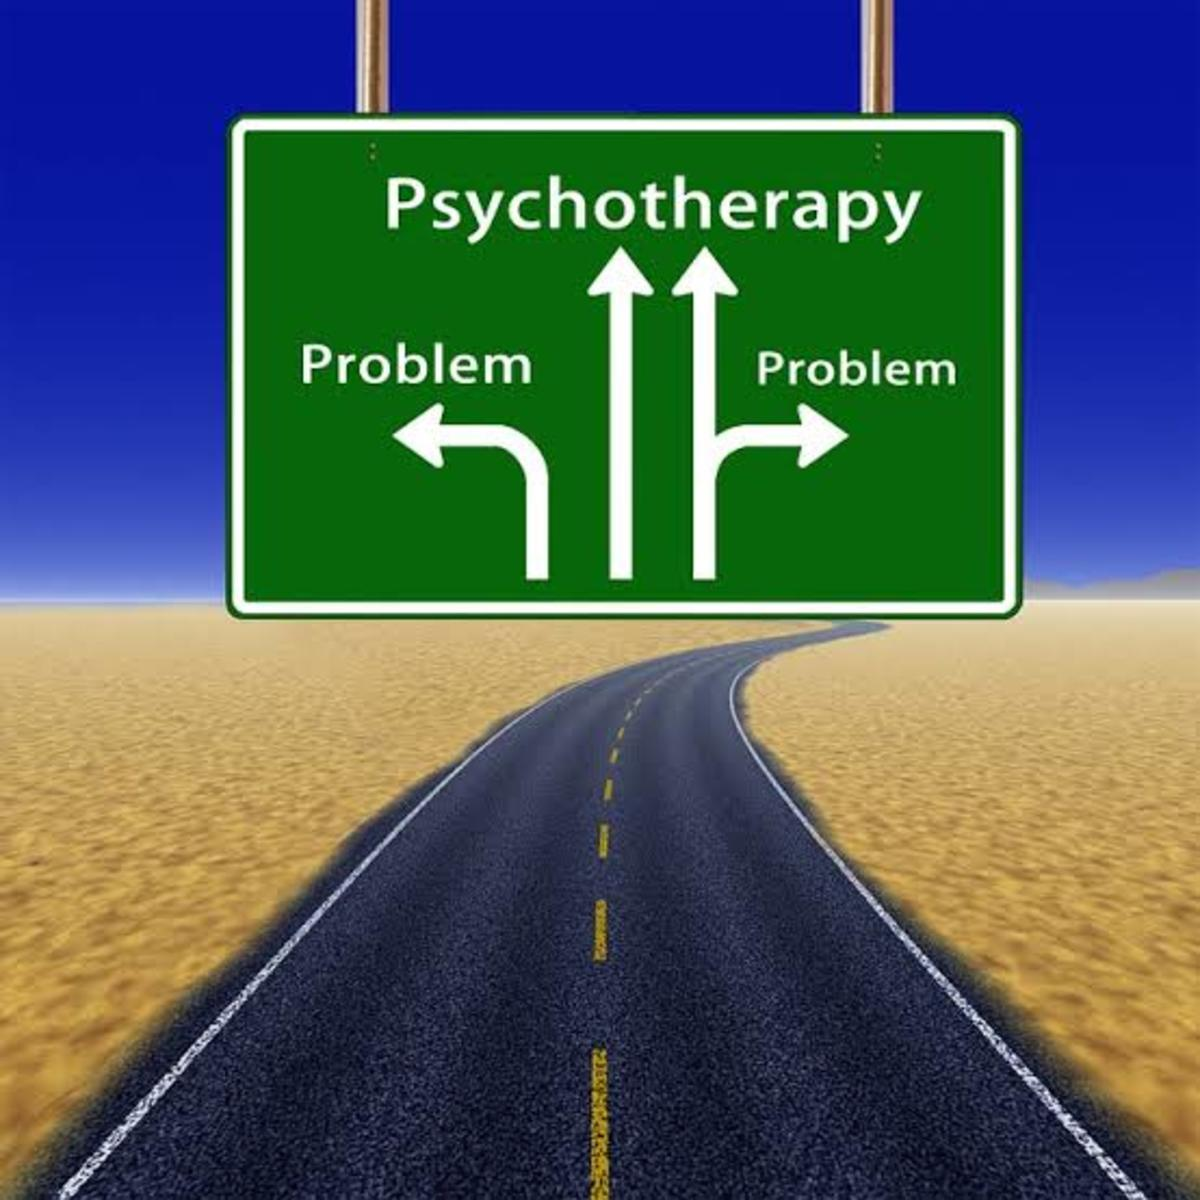 Finding a solution to your emotional problems by consulting, trained psychotherapist.